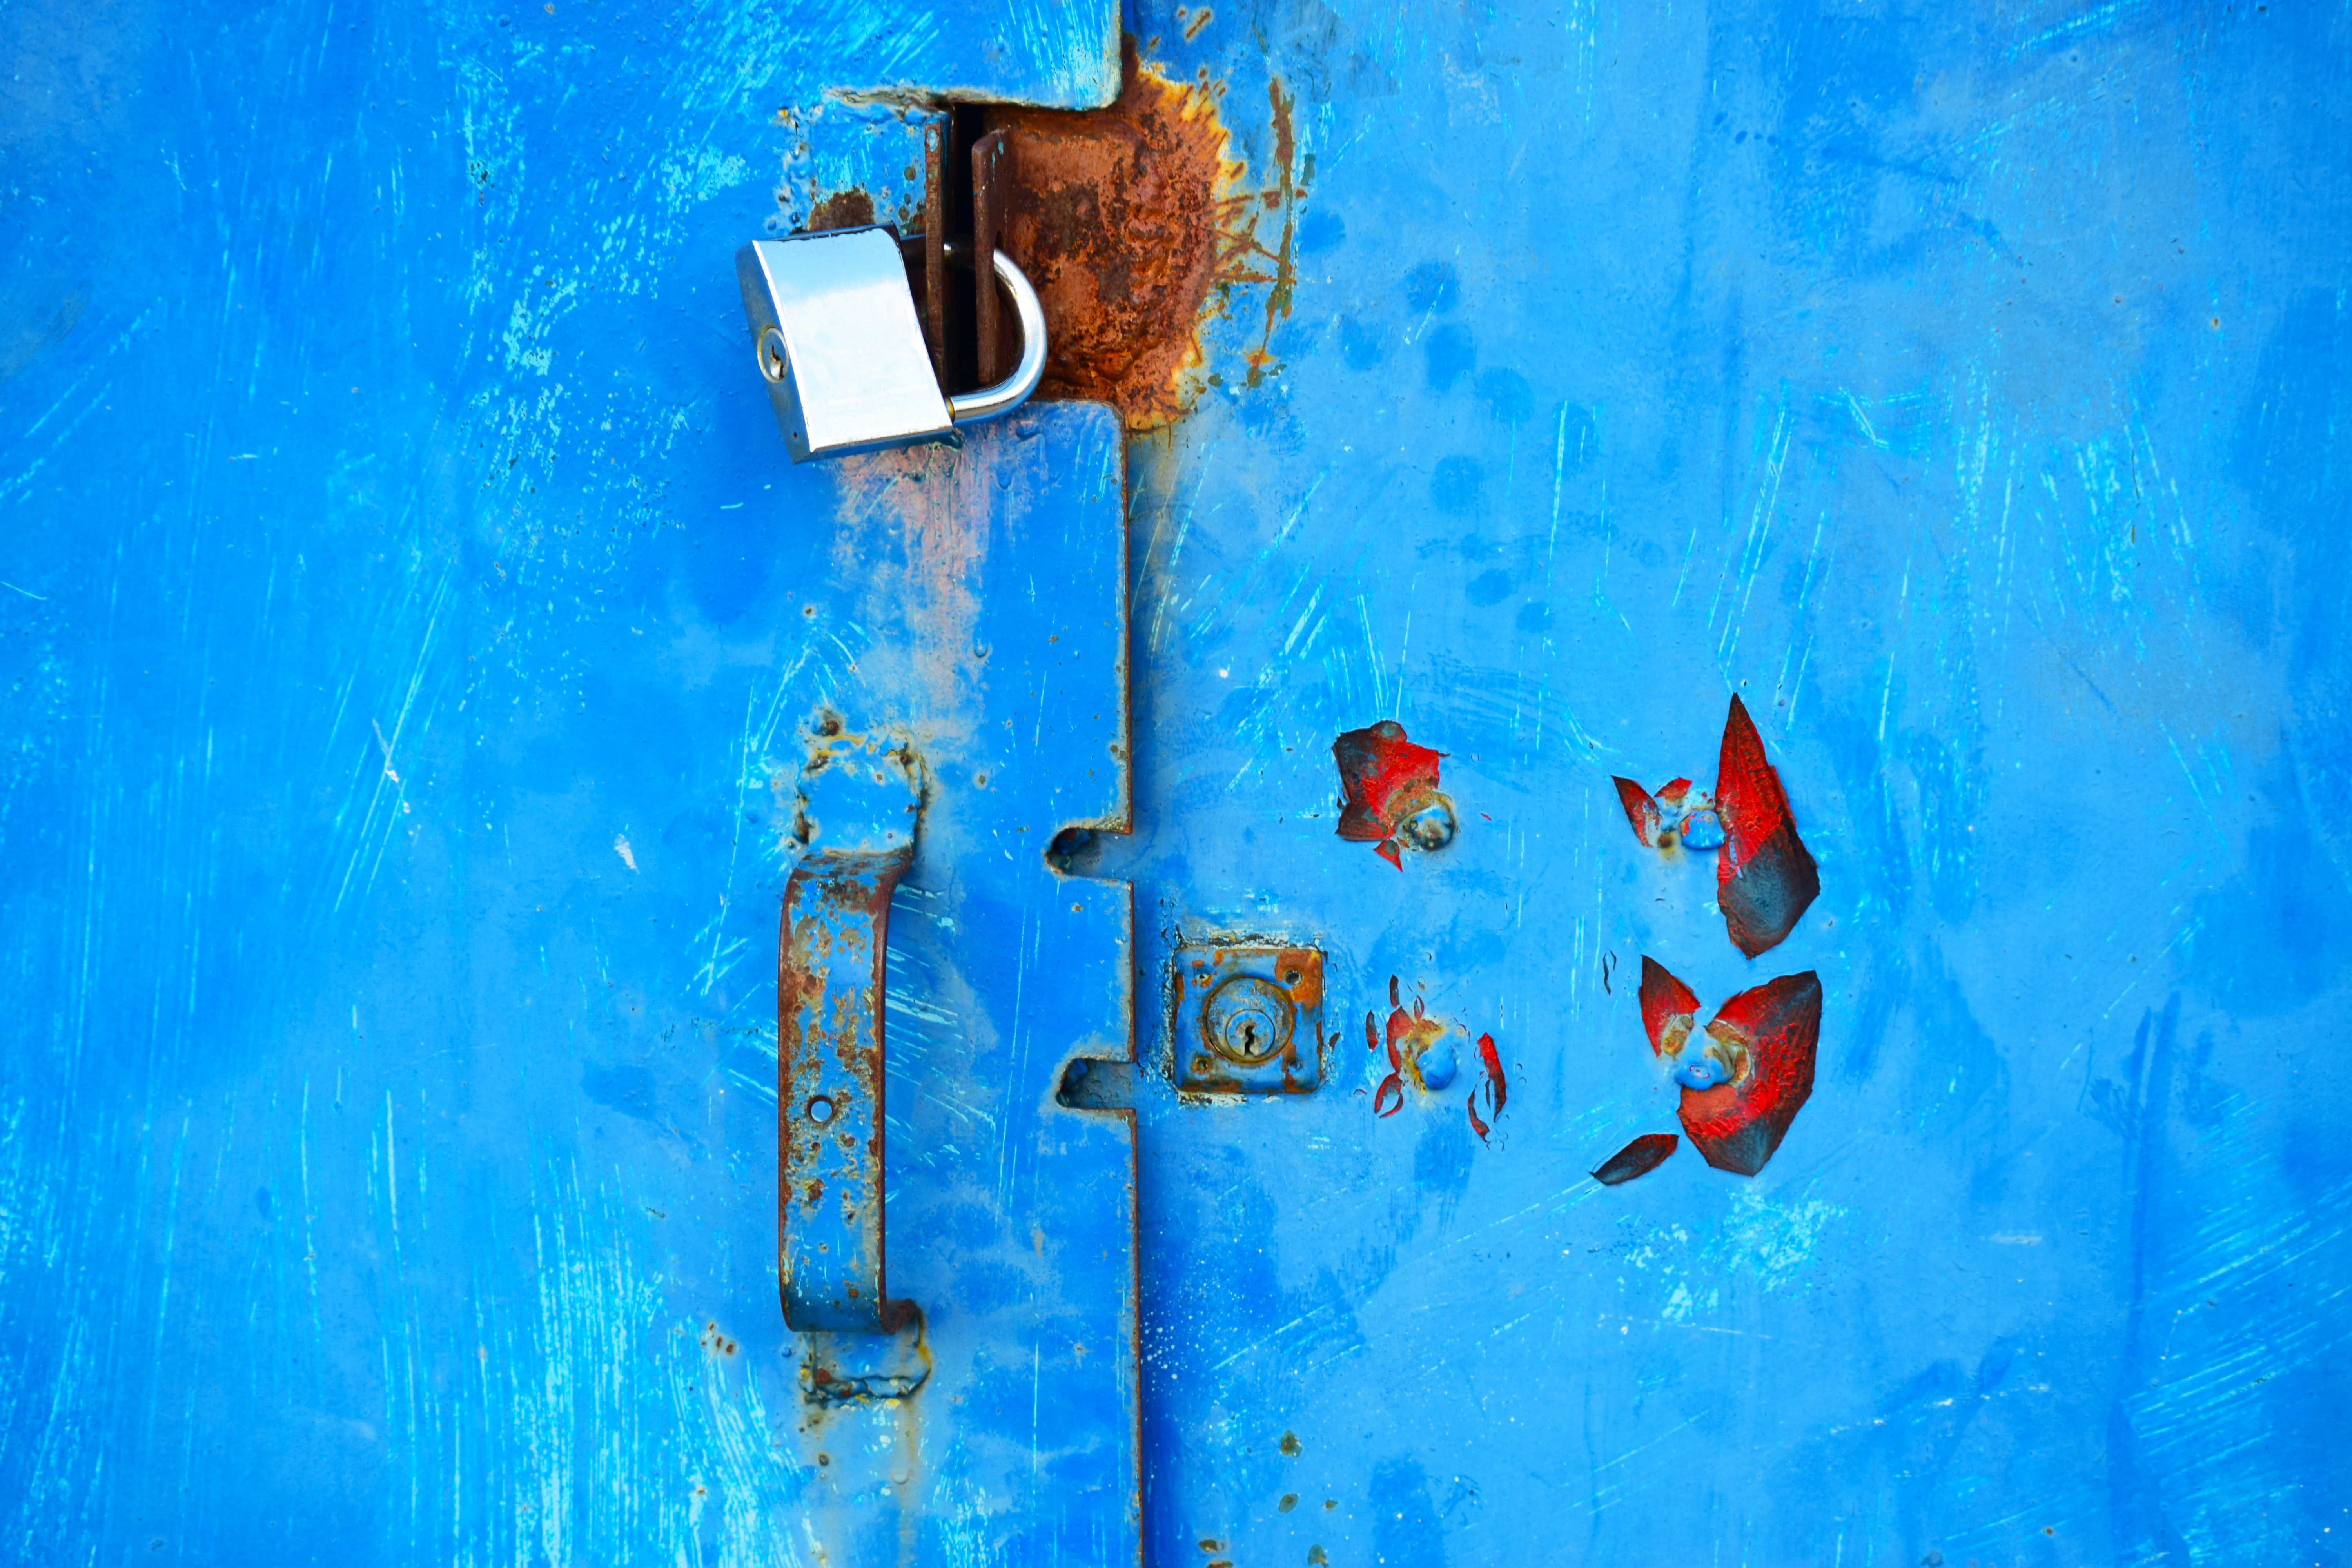 silver padlock on blue steel door